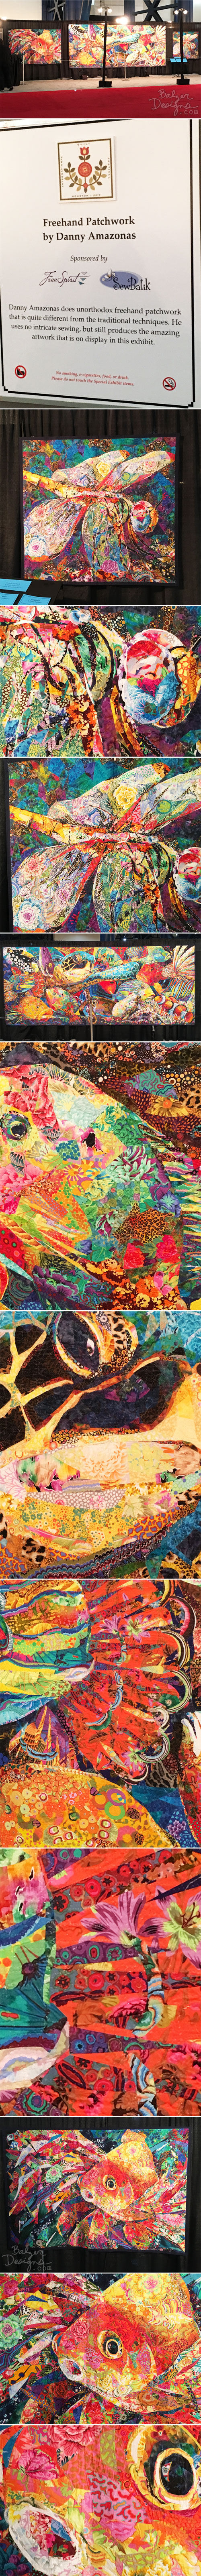 From the Balzer Designs Blog: Quilt Festival 2017: Part Three